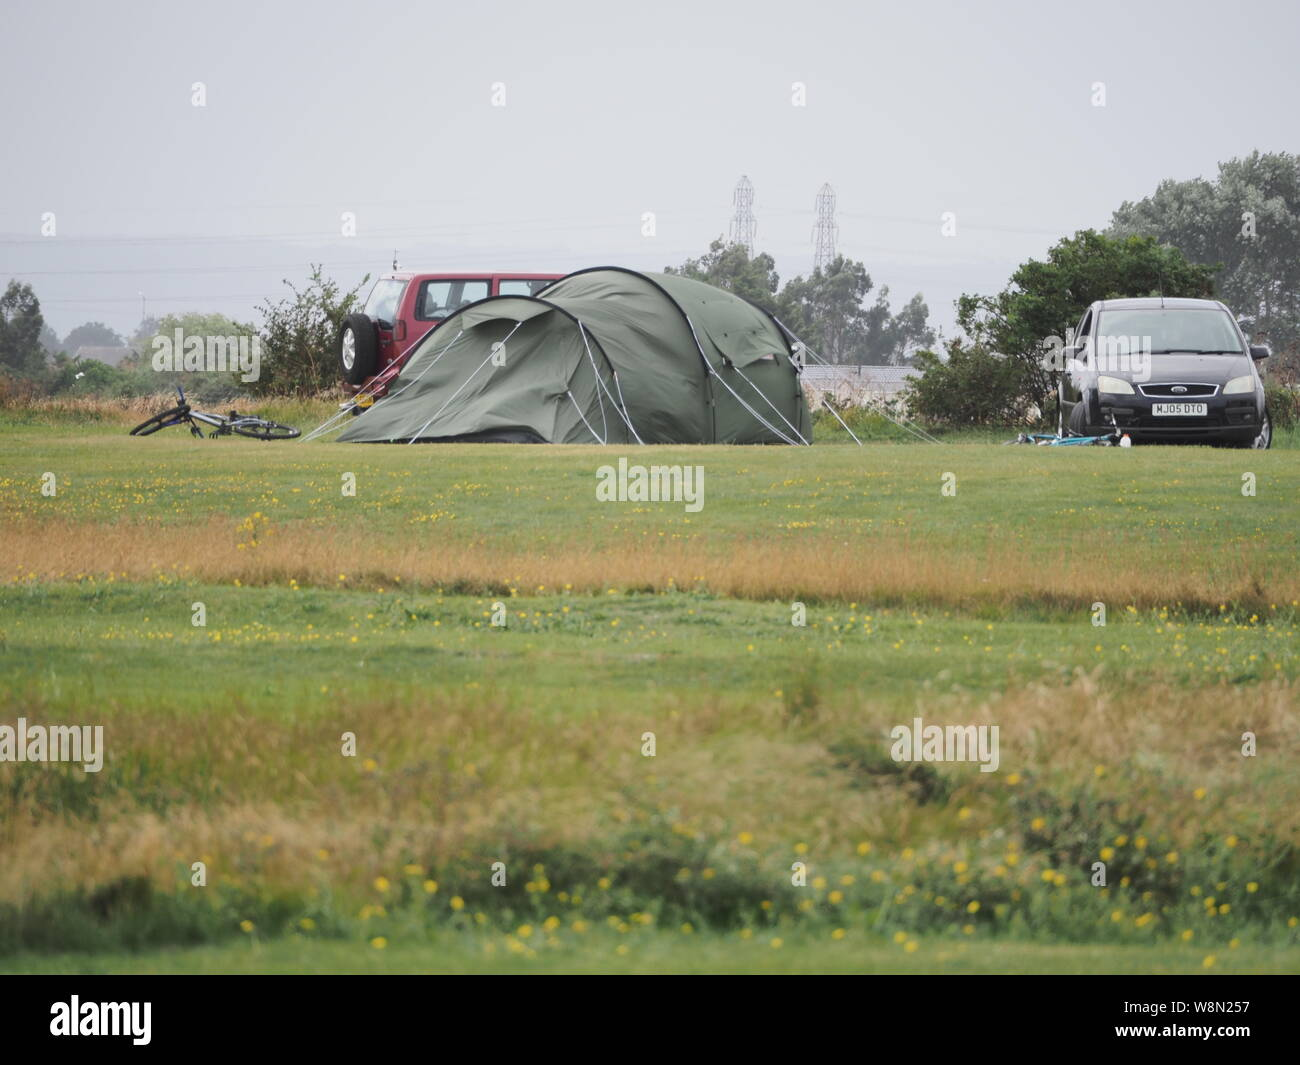 Sheerness, Kent, UK. 10th August, 2019. UK Weather: campers contend with high wind speeds and bad weather in Sheerness, Kent today. Credit: James Bell/Alamy Live News Stock Photo